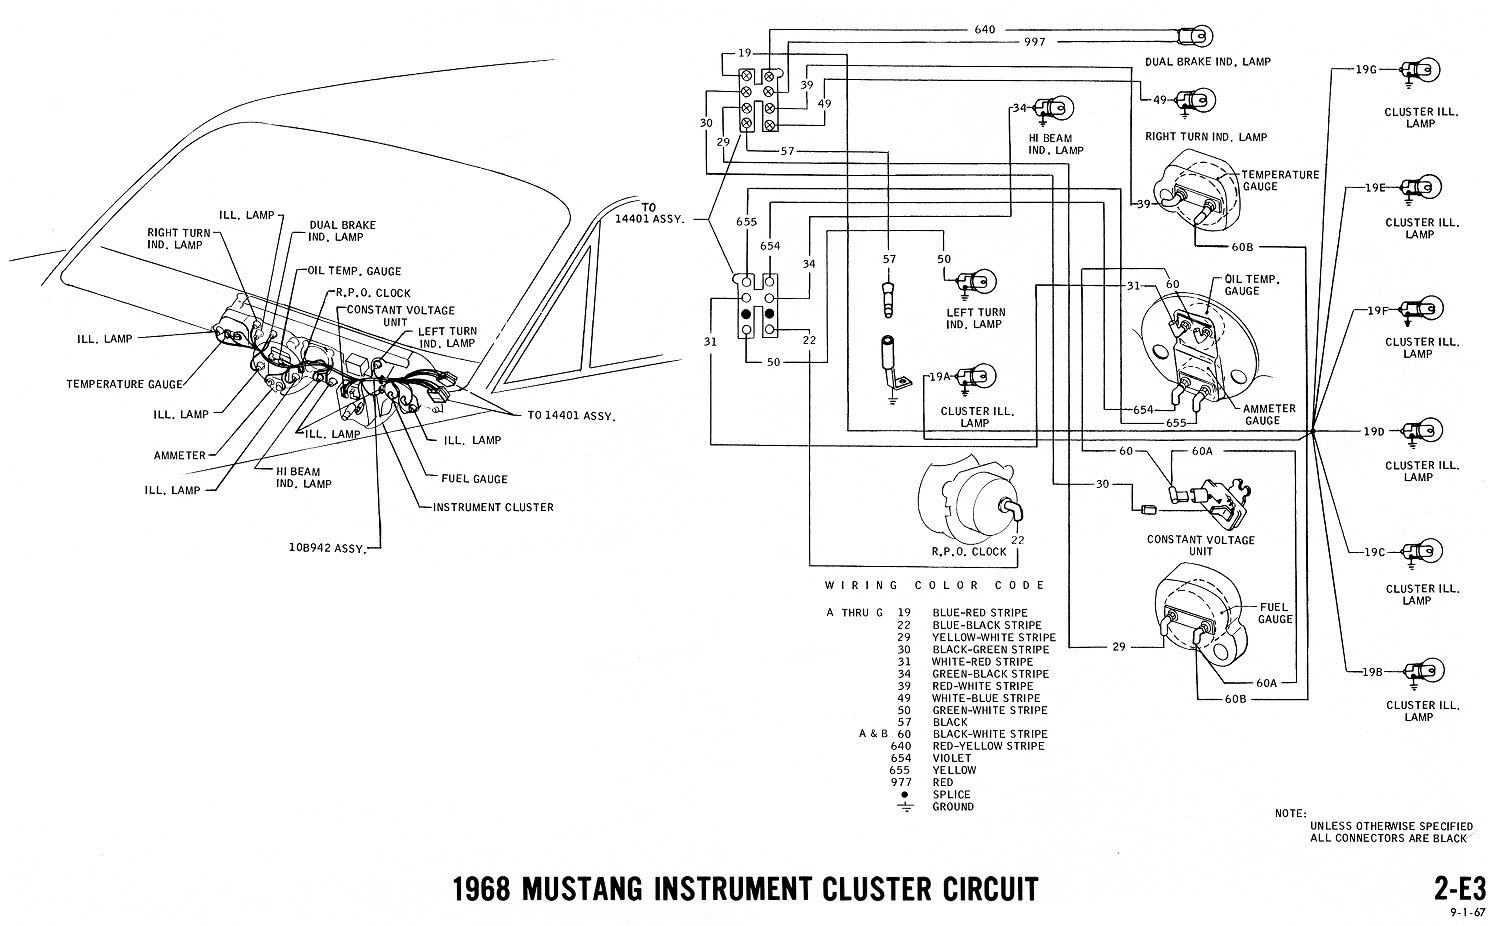 DIAGRAM] 67 Mustang Ammeter Wiring Diagram FULL Version HD Quality Wiring  Diagram - ALIGNMENTVENNDIAGRAM.POPUP-GALERIE.FRpopup-galerie.fr